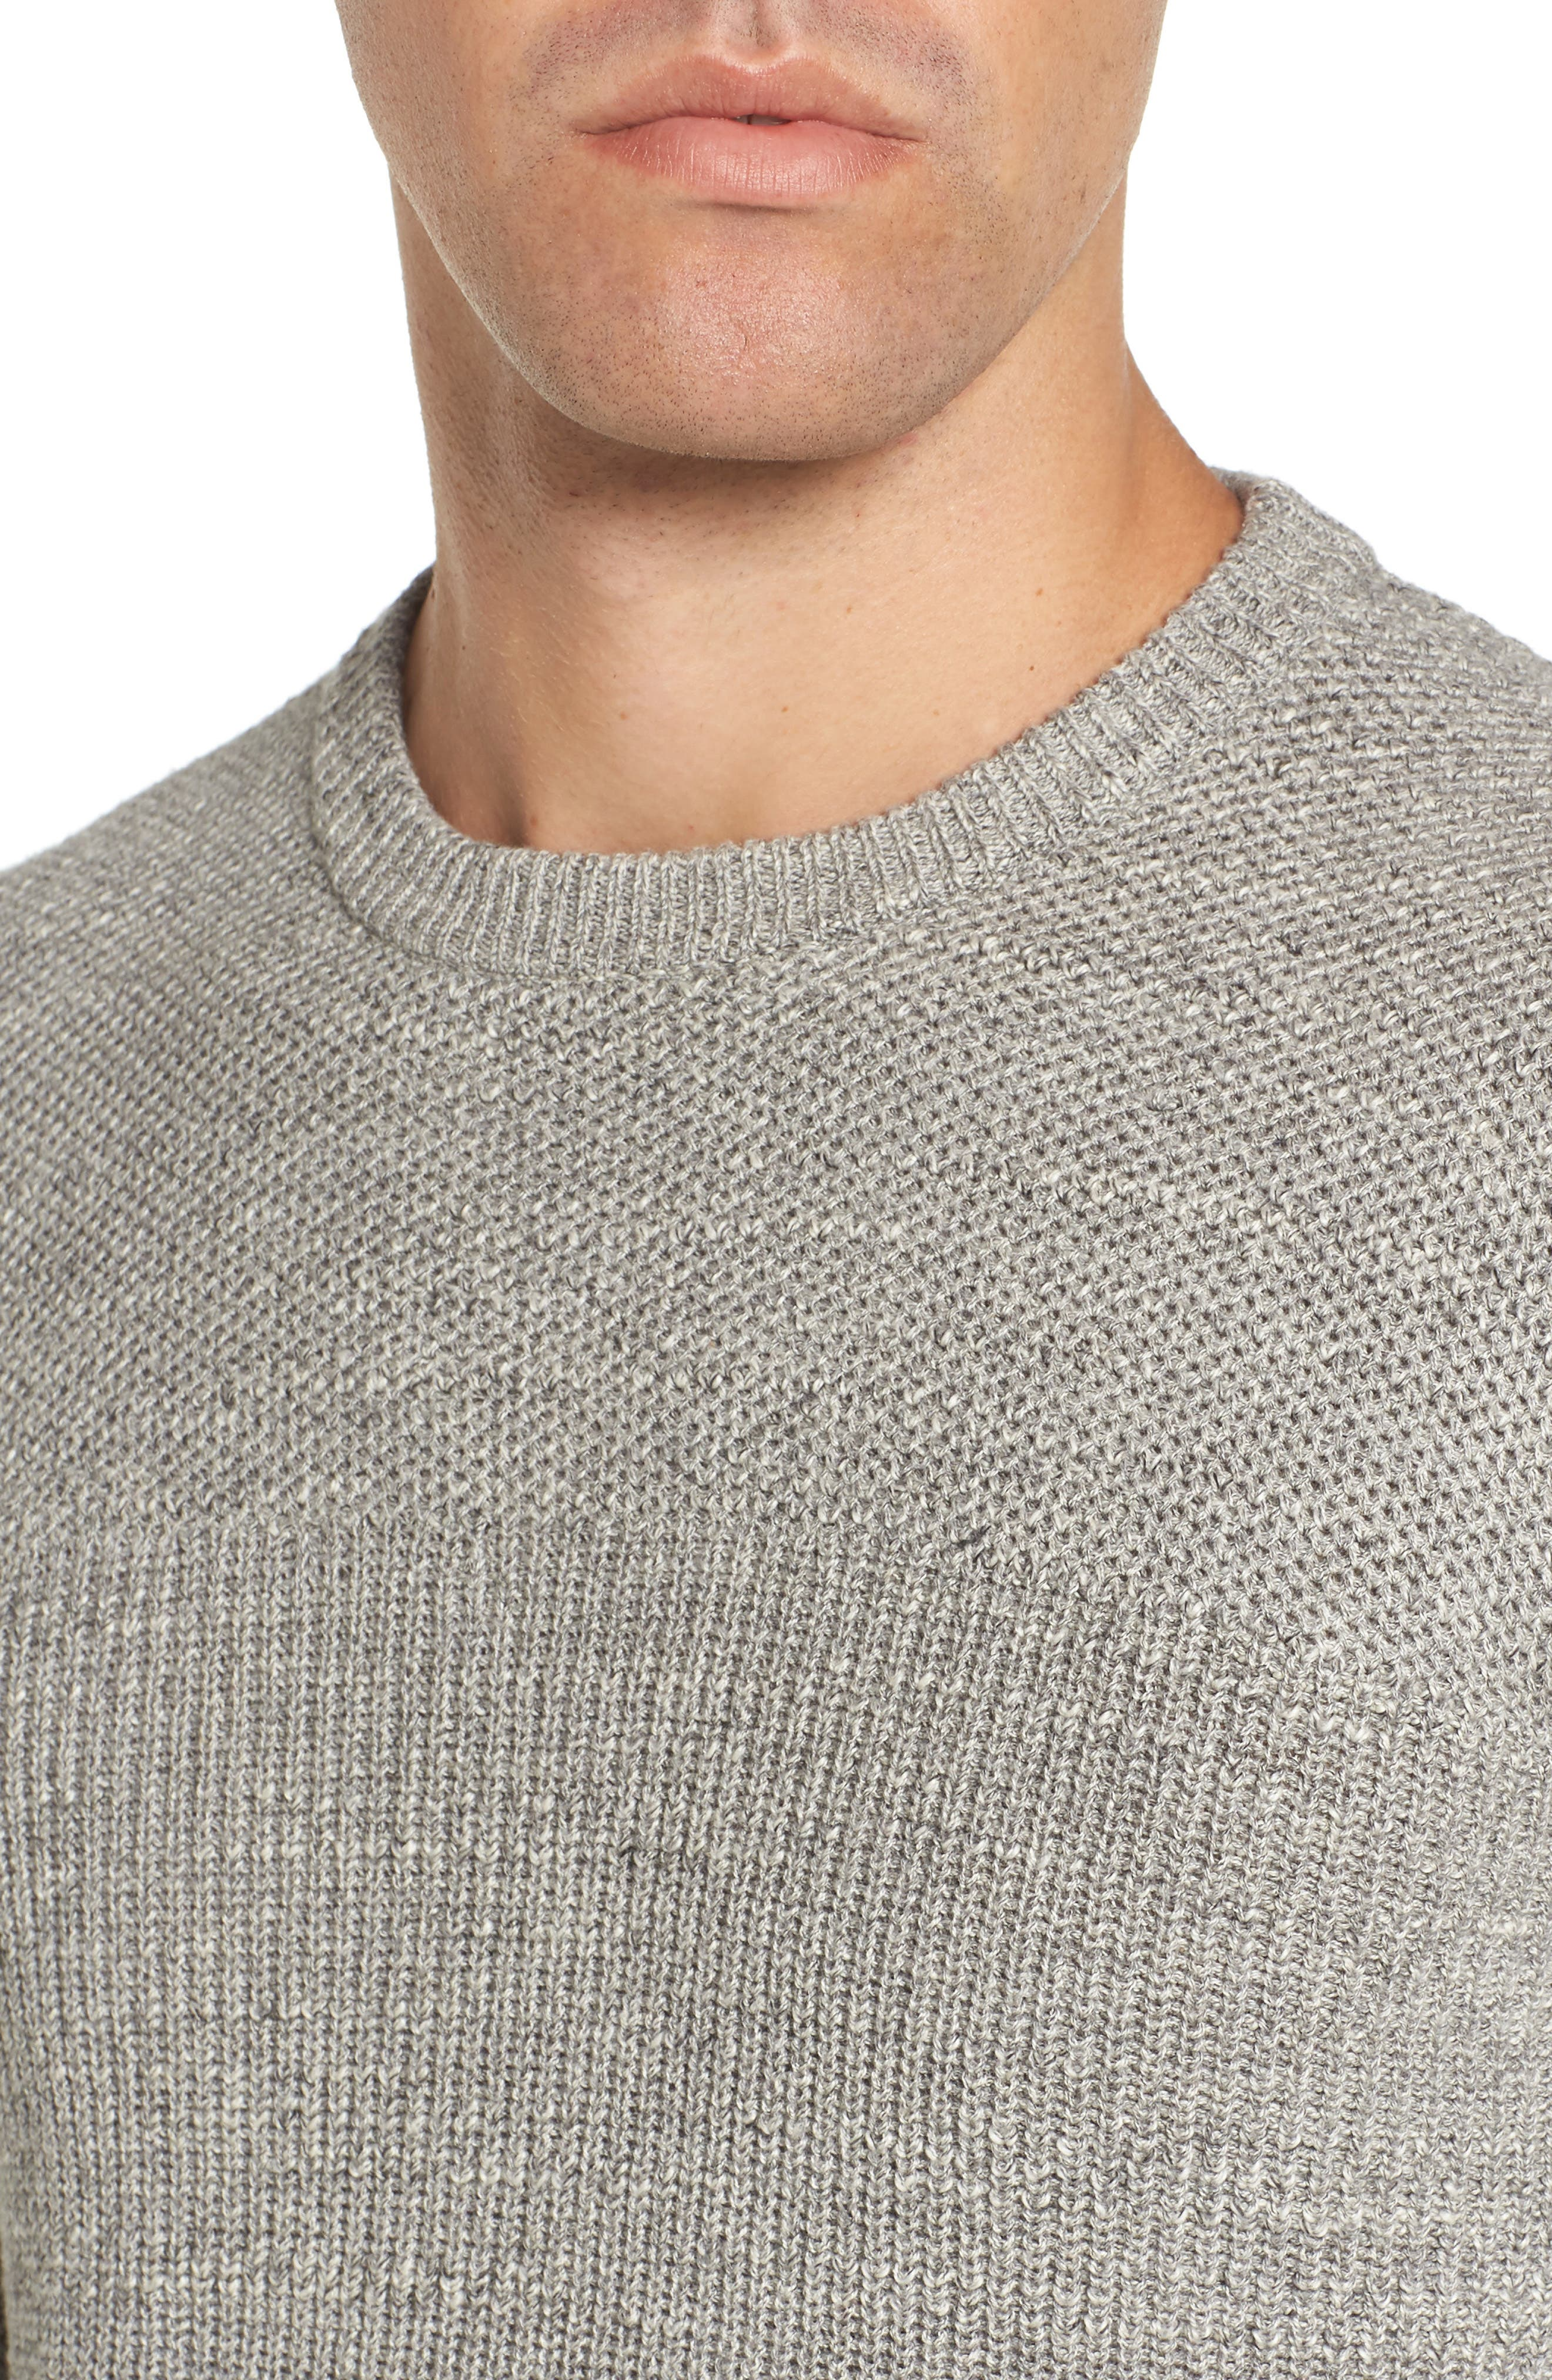 Ardsley Textured Sweater,                             Alternate thumbnail 4, color,                             Grey Heather